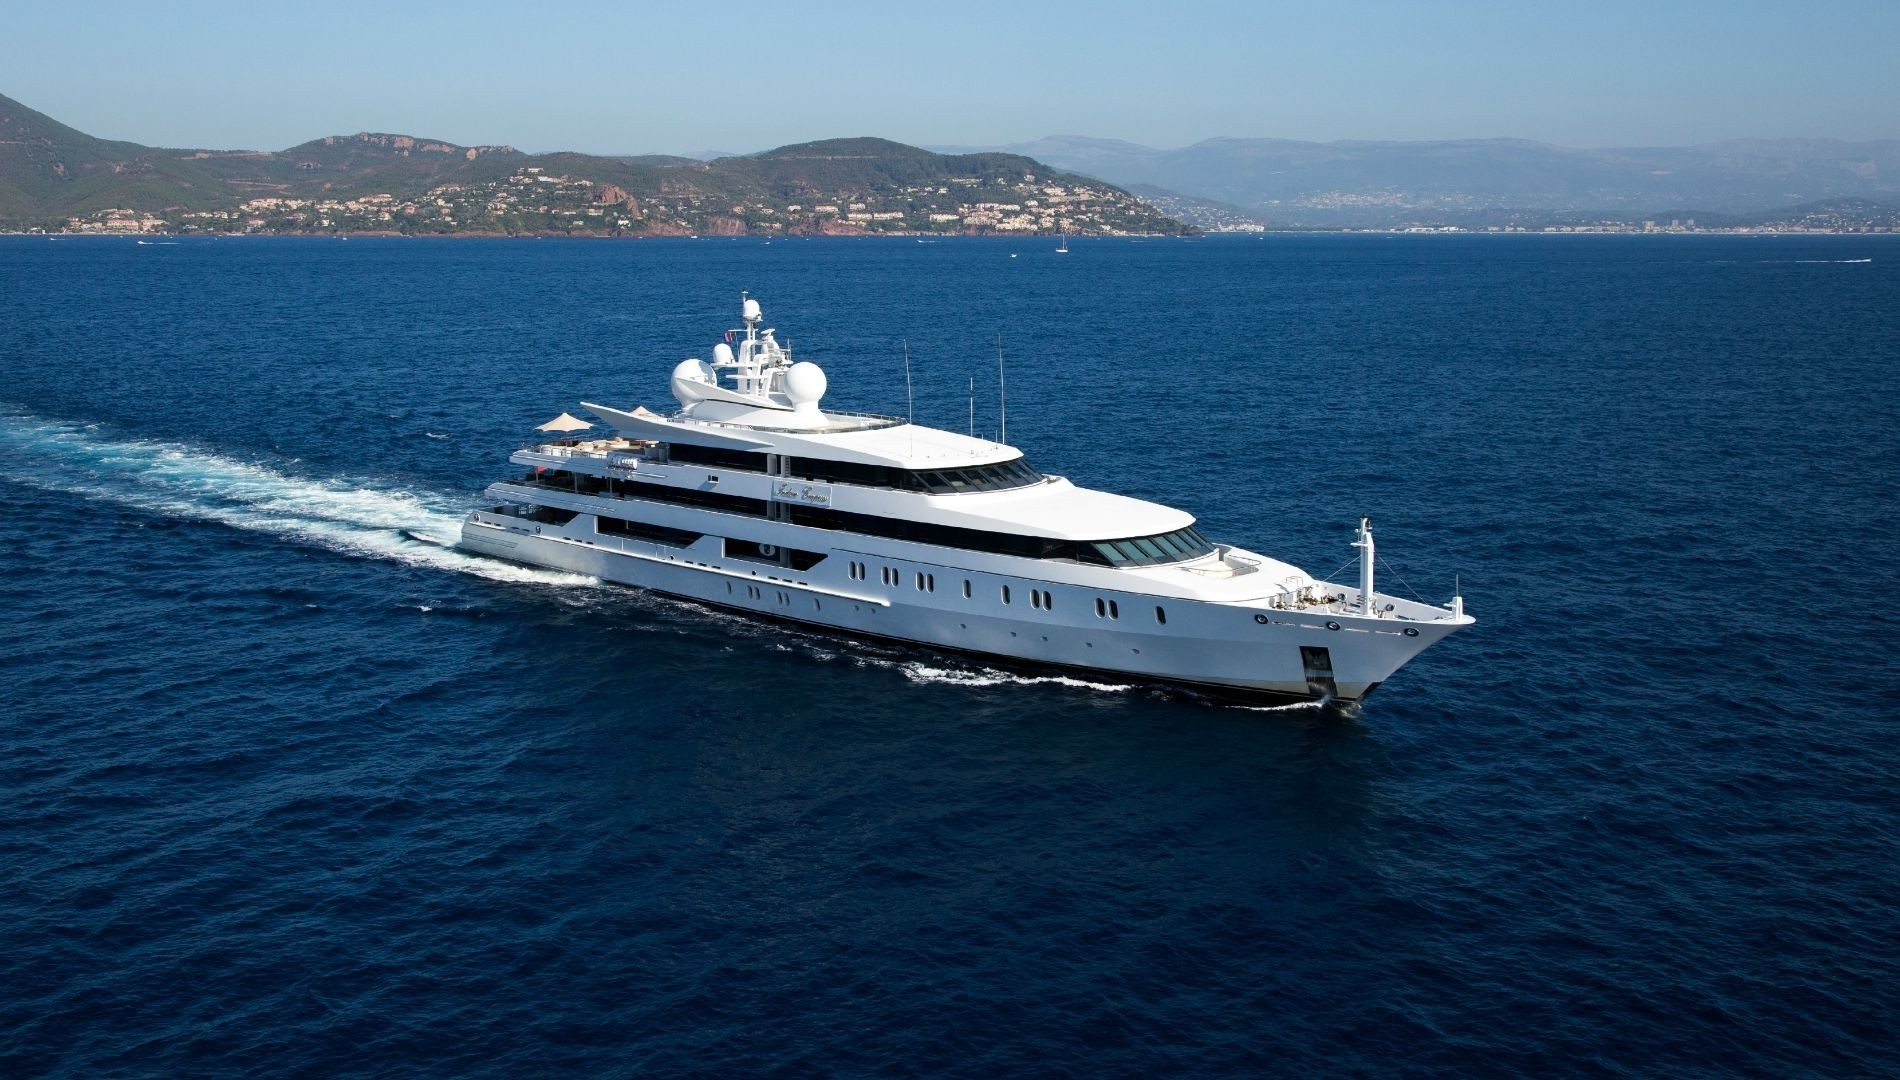 95m Oceanco superyacht running profile aerial view